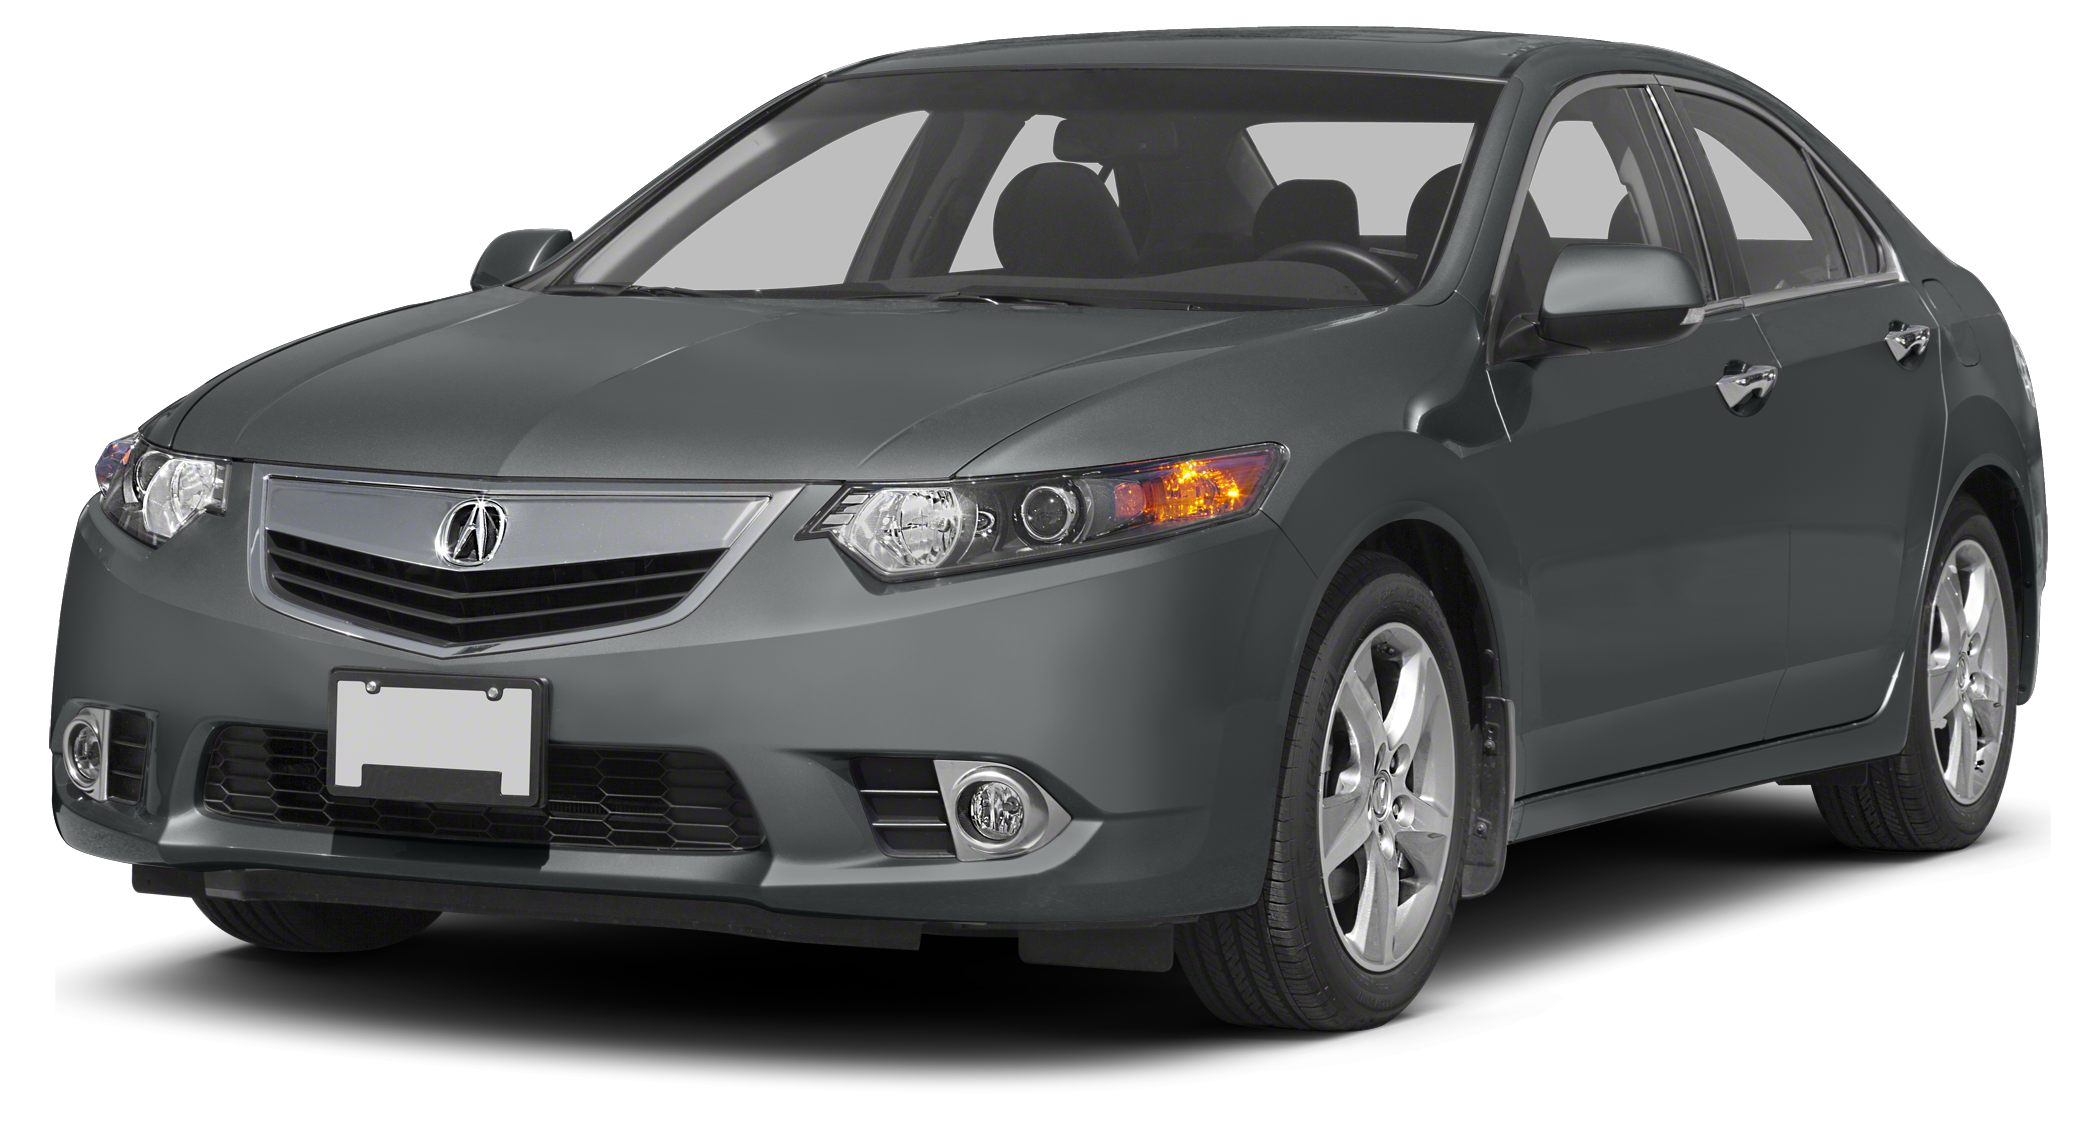 2012 Acura TSX 24 THIS VEHICLE COMES WITH OUR BEST PRICE GUARANTEE Miles 44094Color Graphite